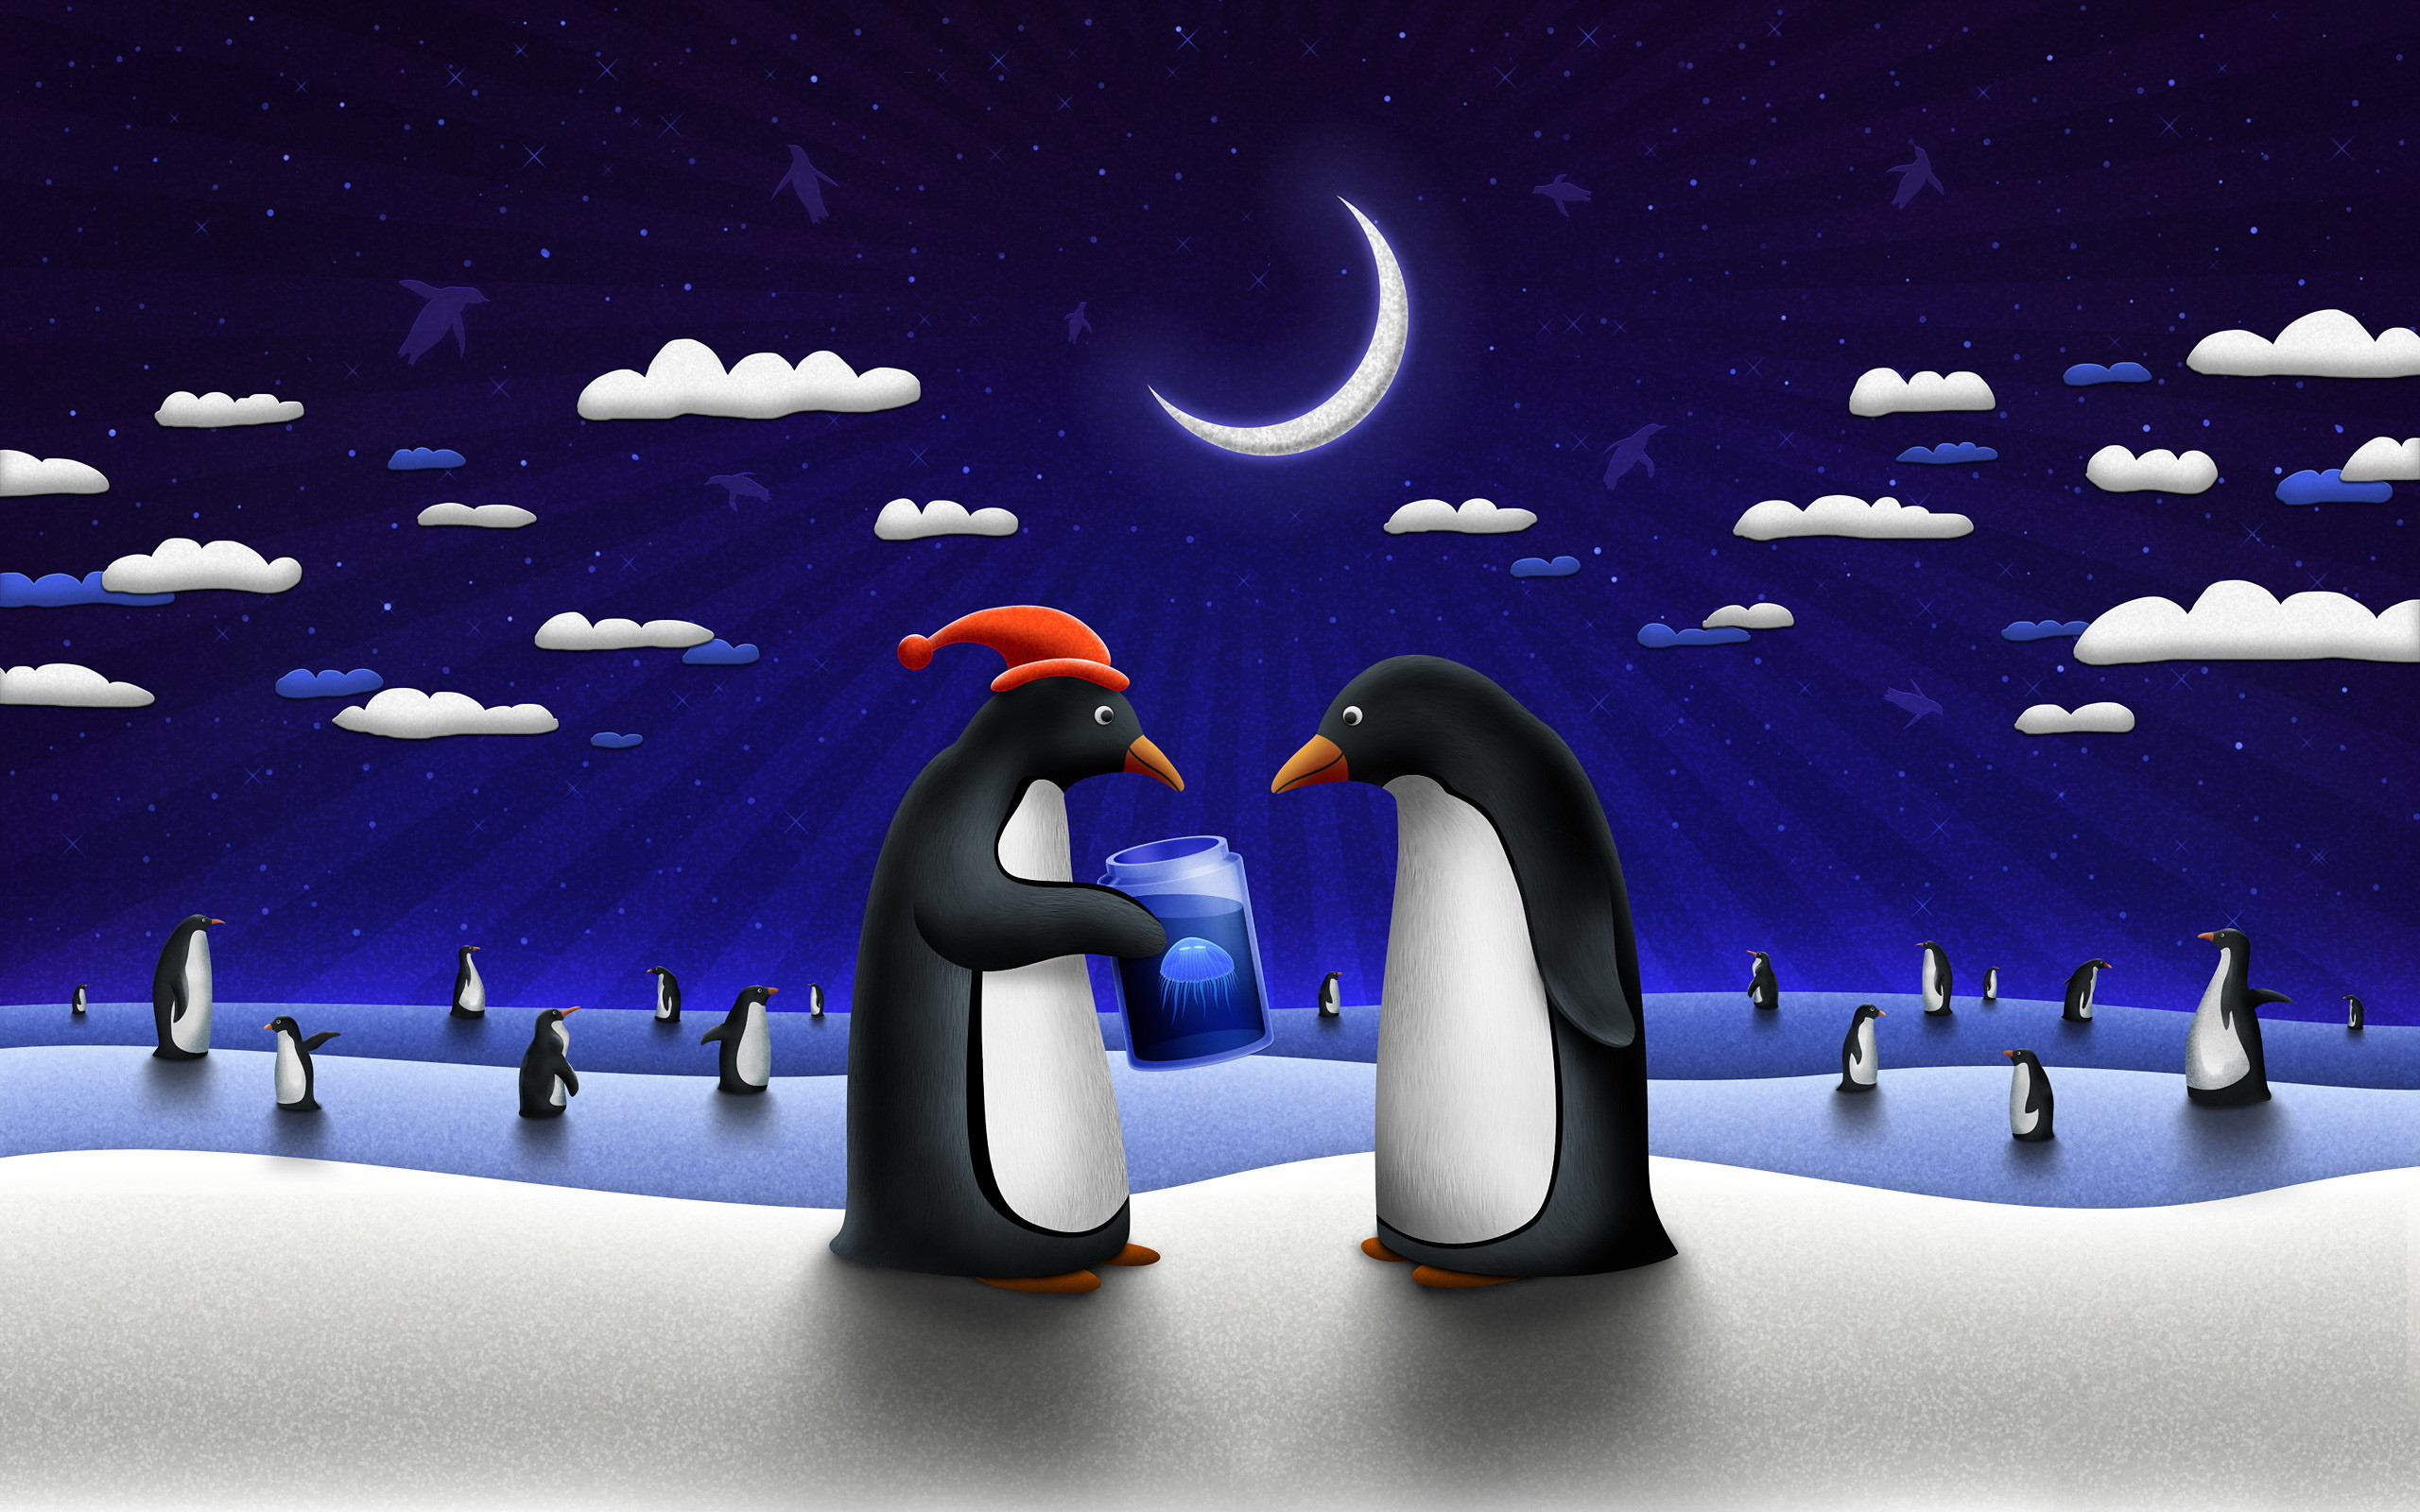 night Penguins vladstudio penguin HD Wallpaper